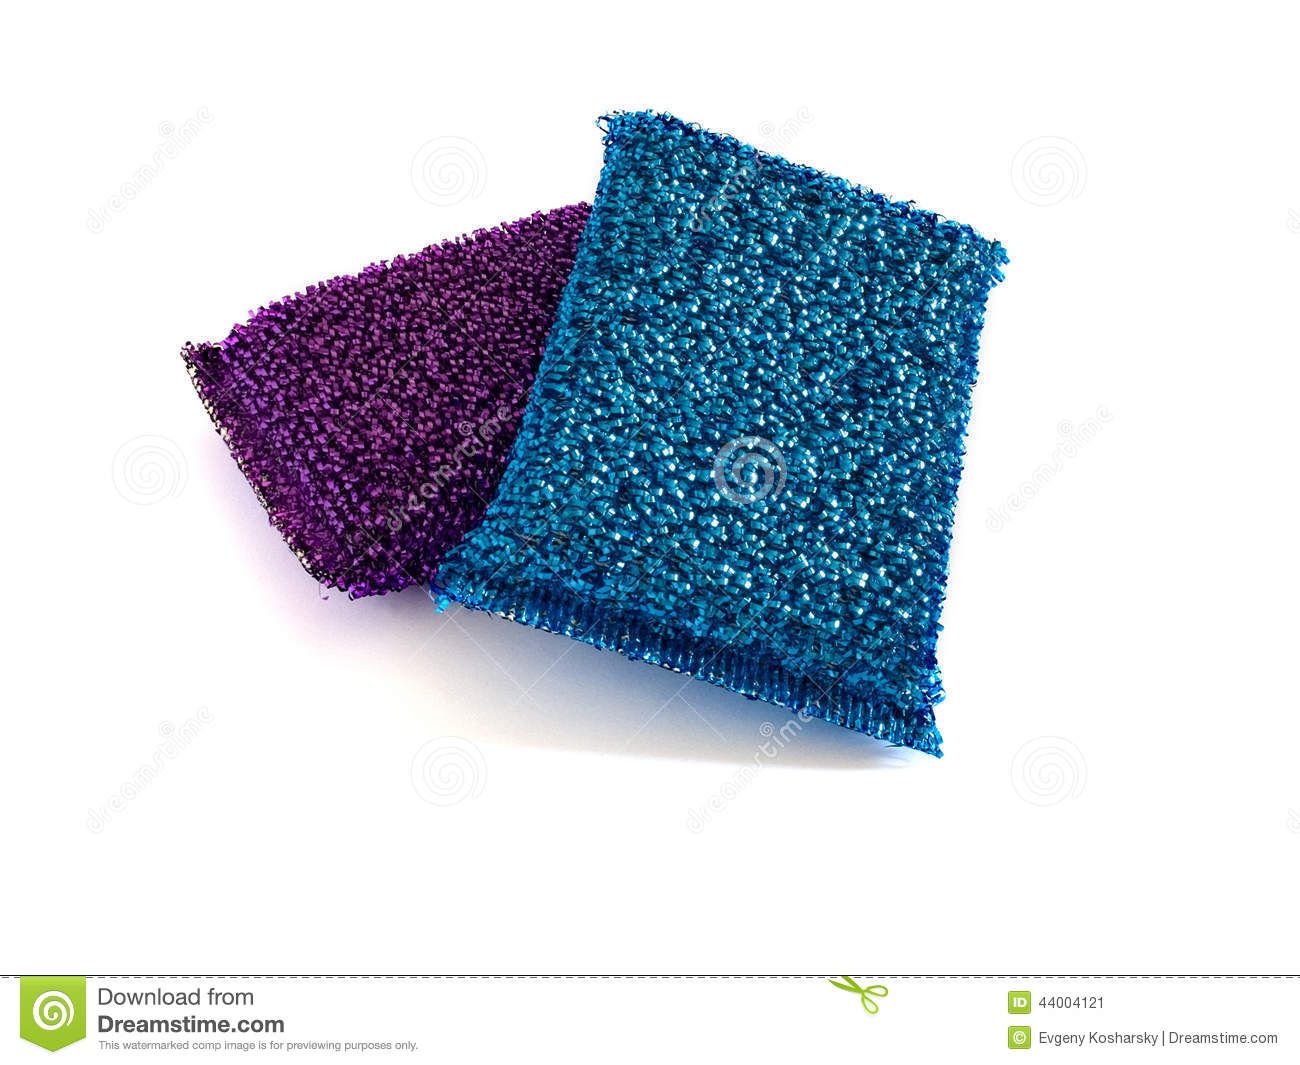 Two Metallic Kitchen Sponges Stock Photo Image 44004121